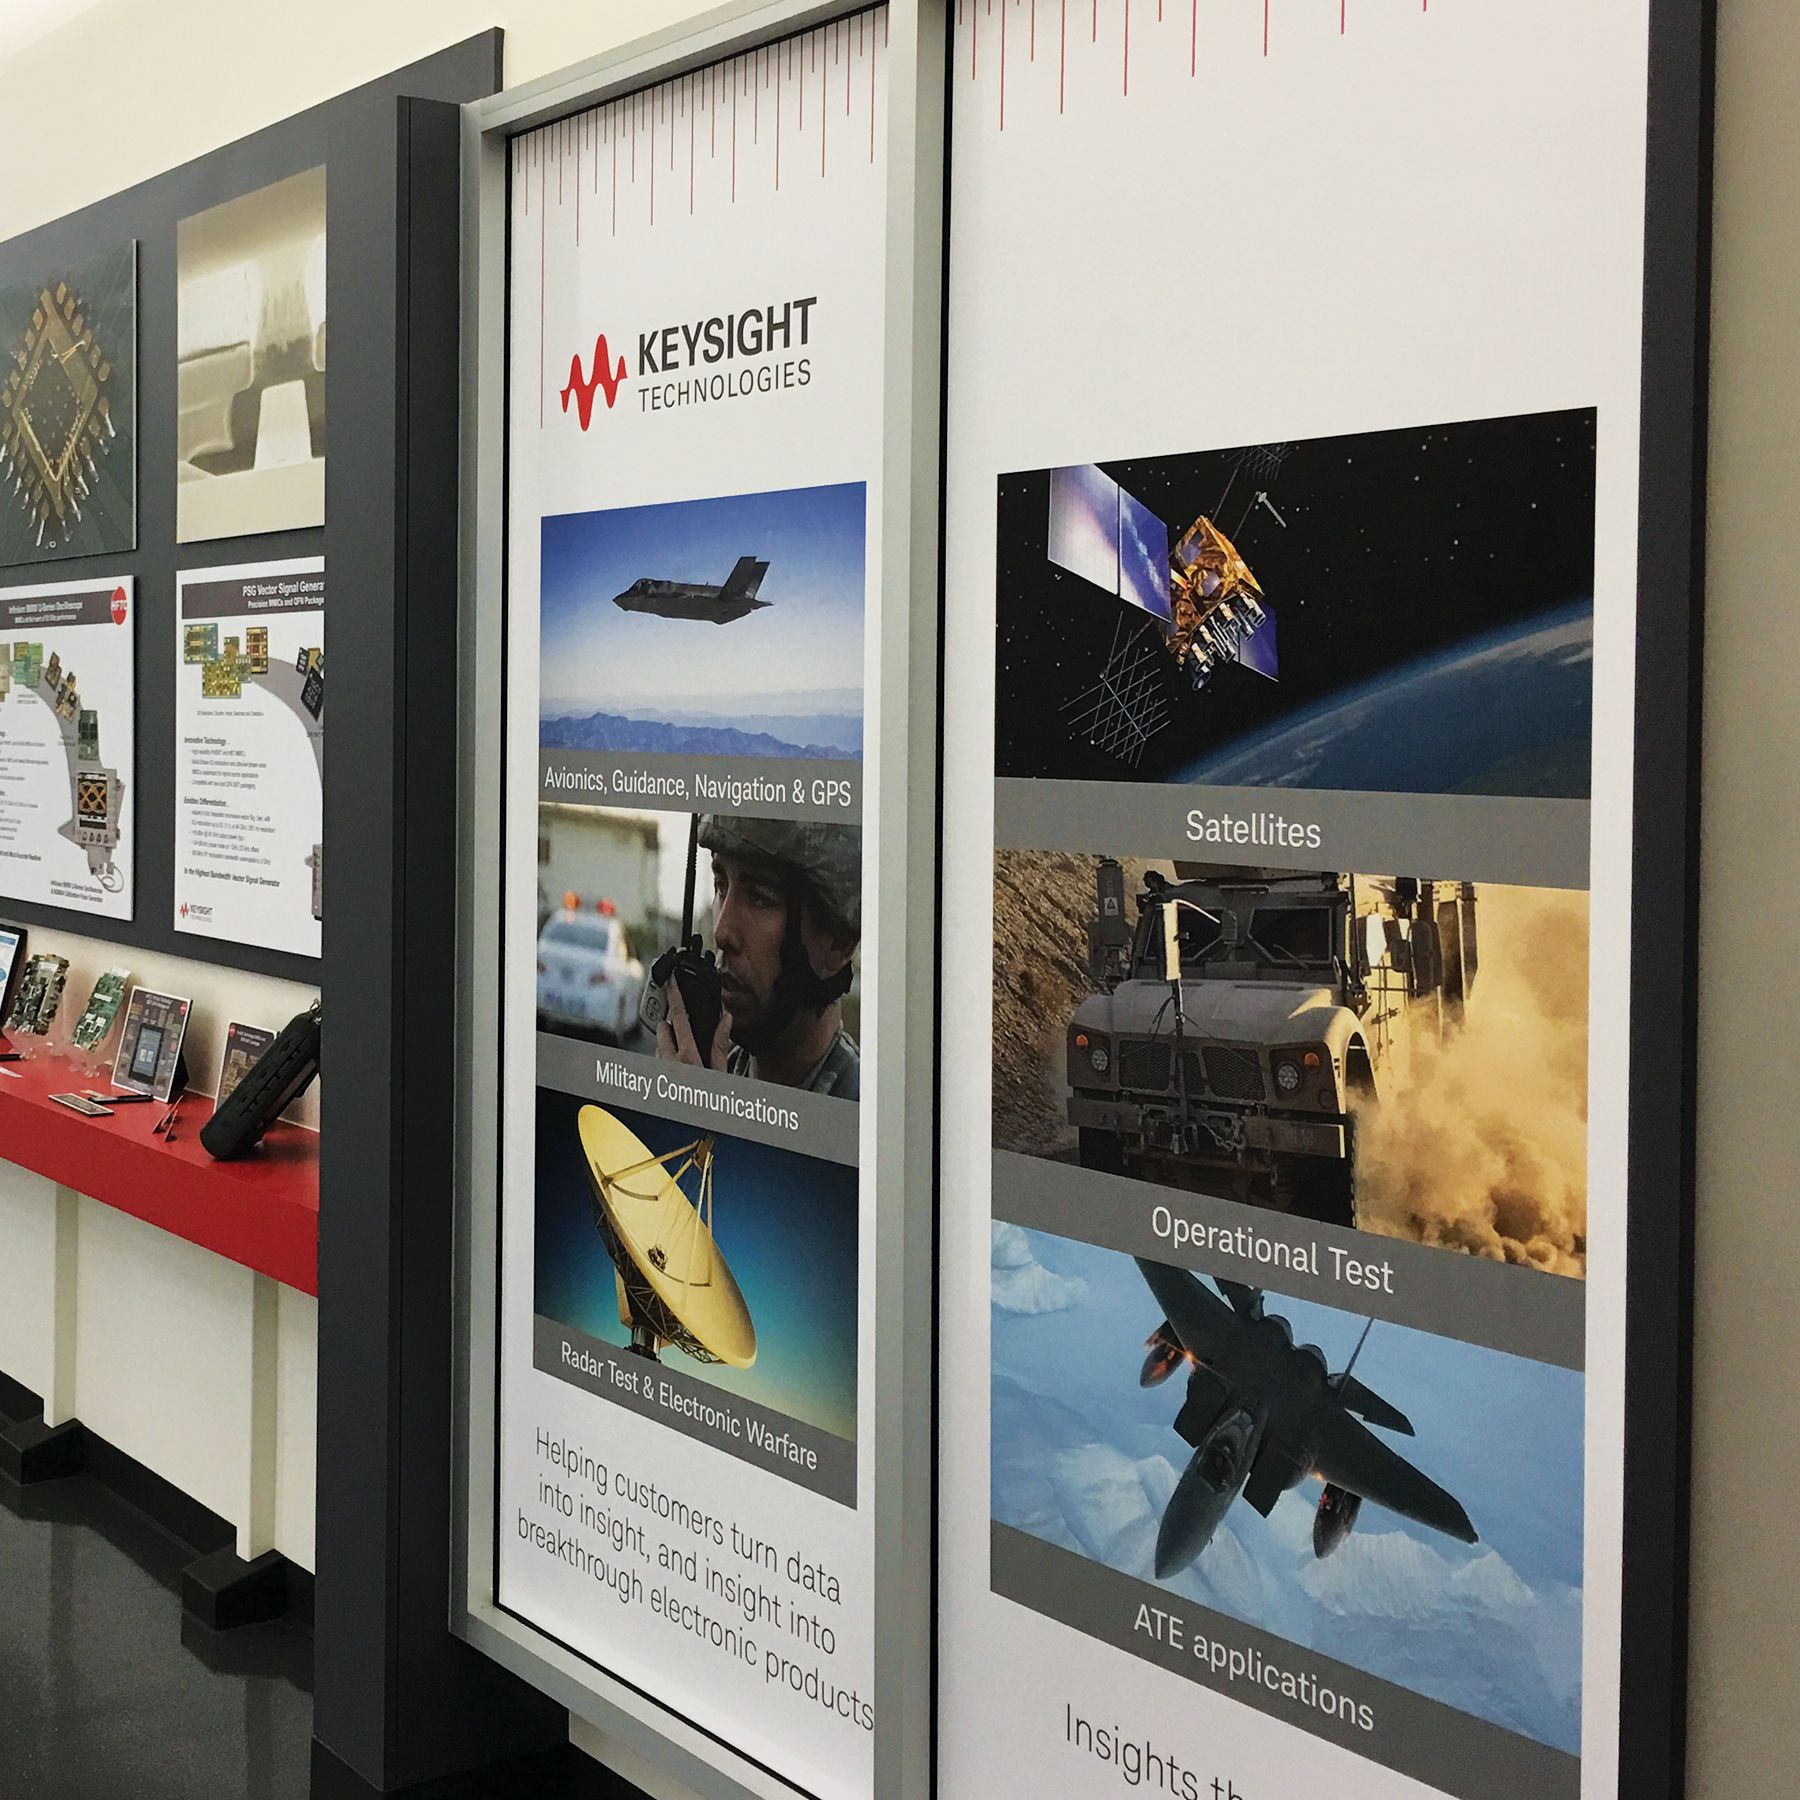 Simple Vinyl Signage Prints To Create A Welcome Exhibit At This Keysight Location Wall Graphics Vinyl Graphics Signage